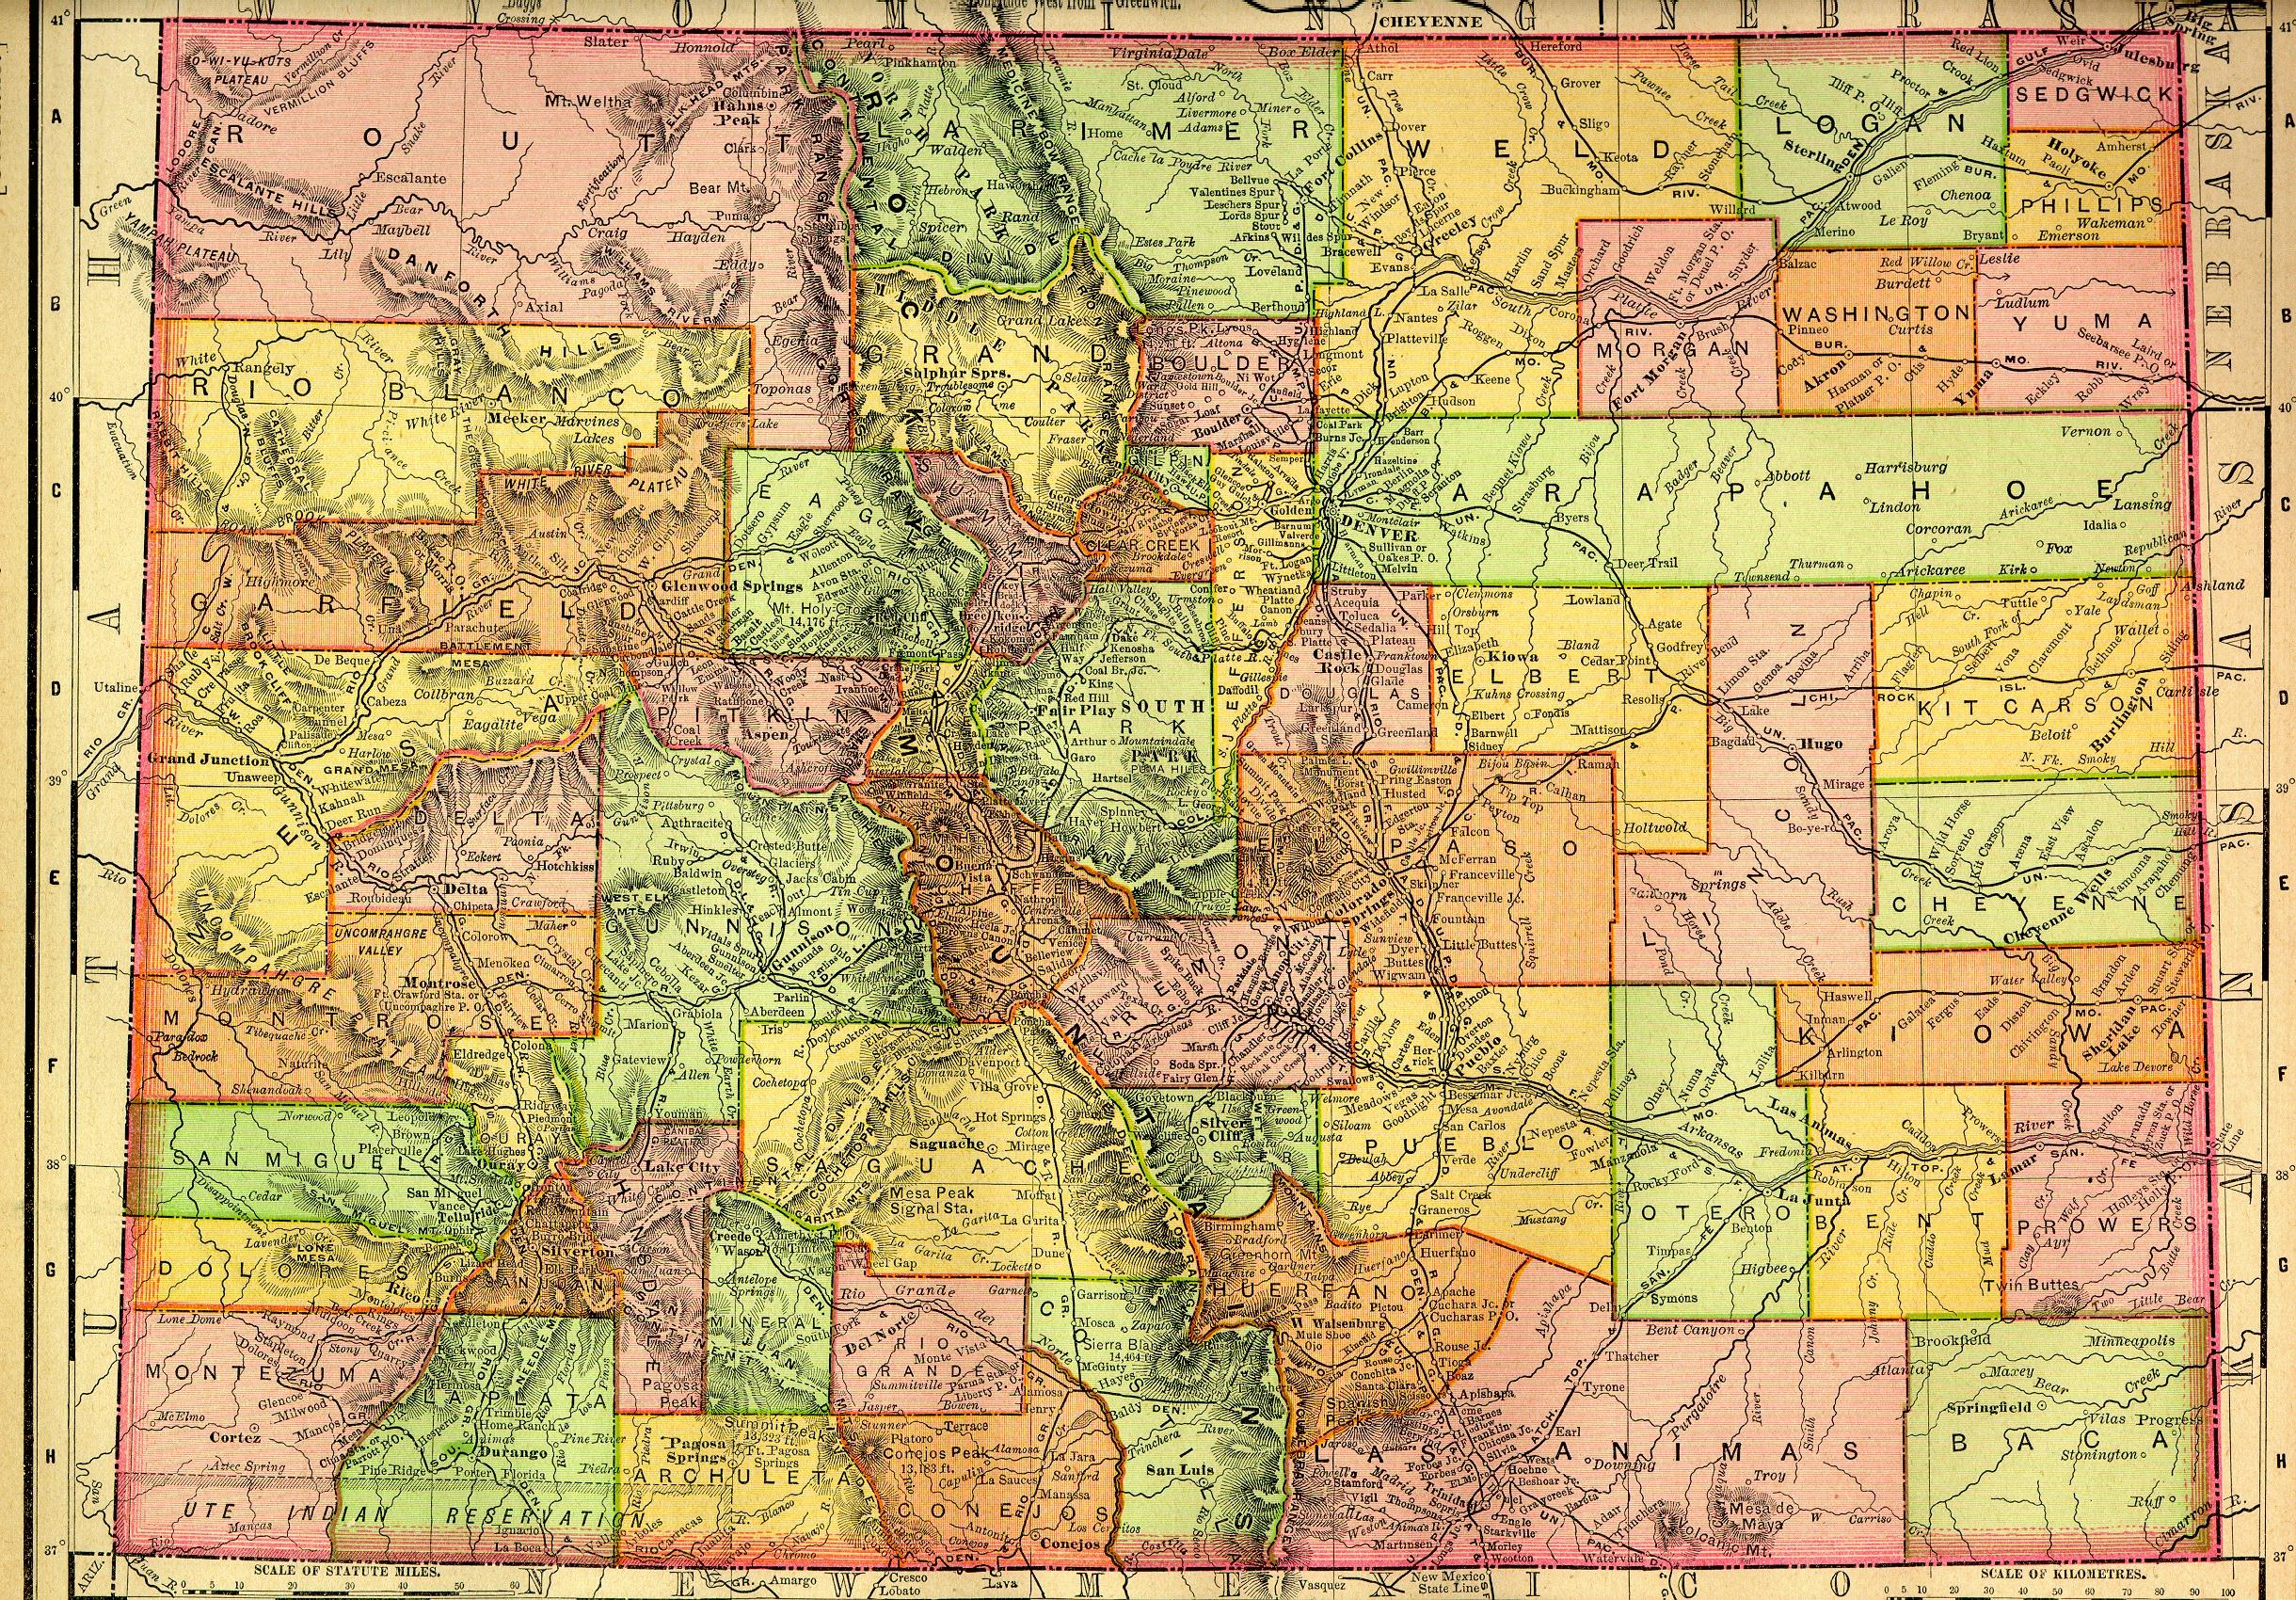 Colorado Maps US Digital Map Library Table Of Contents Page - Map of colo